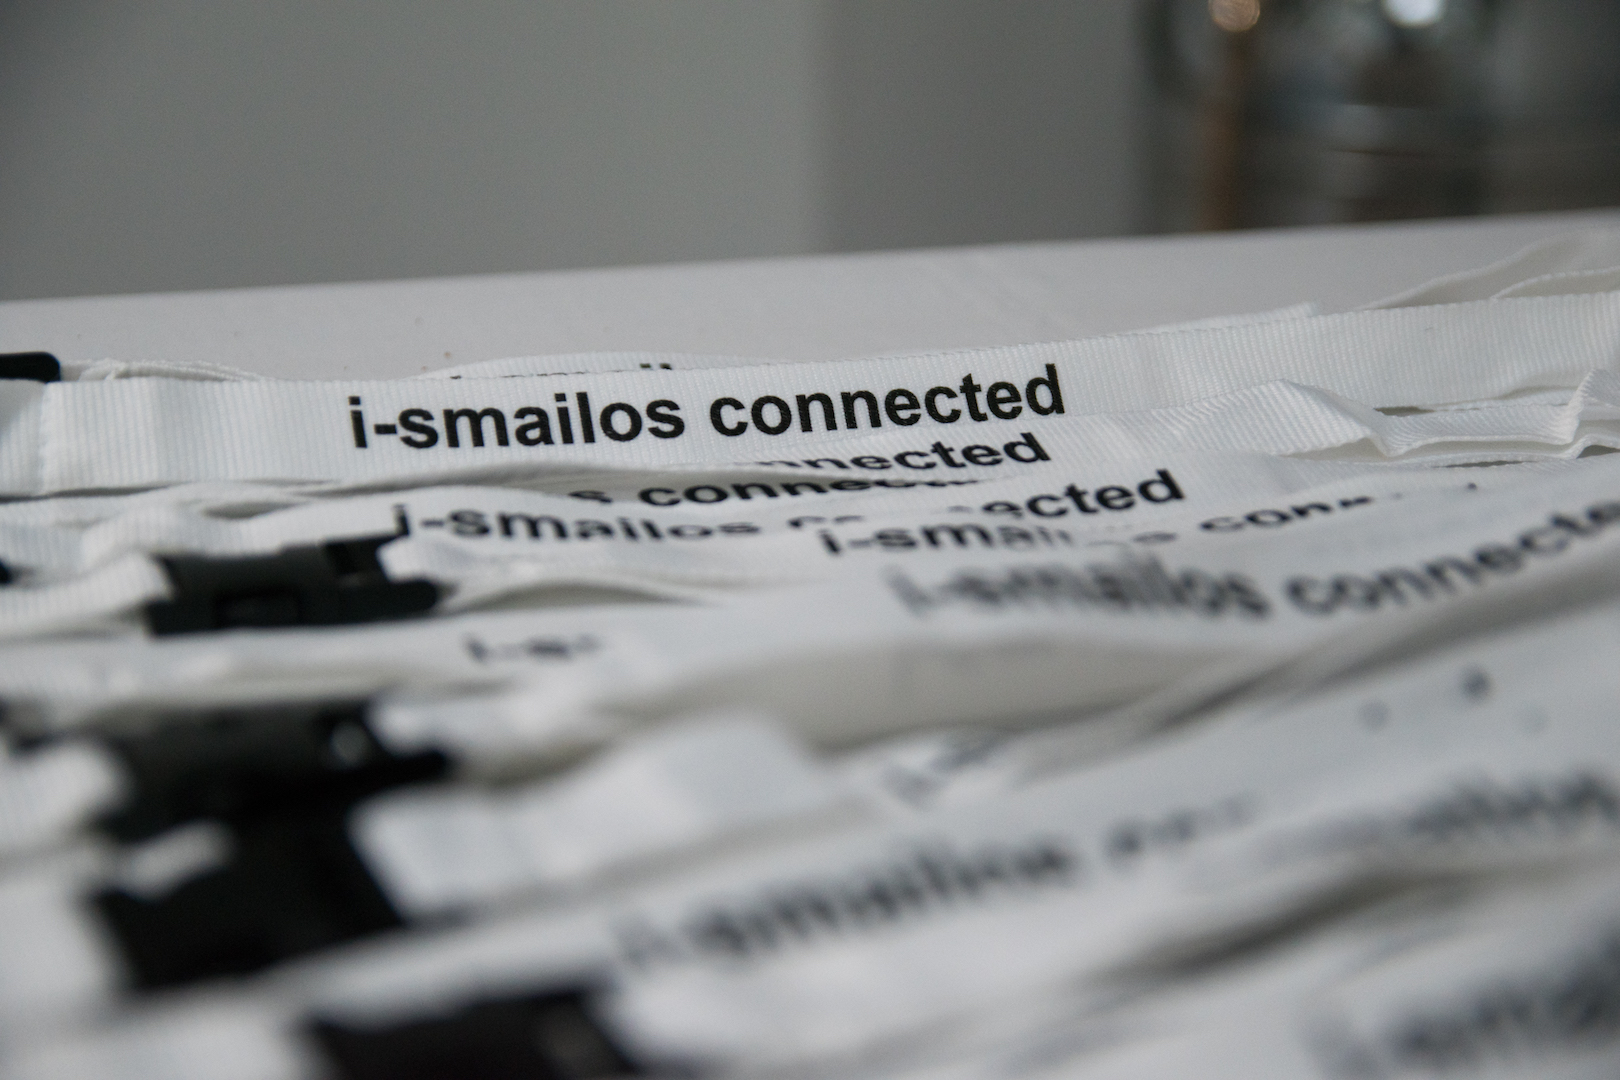 Ismailos connected